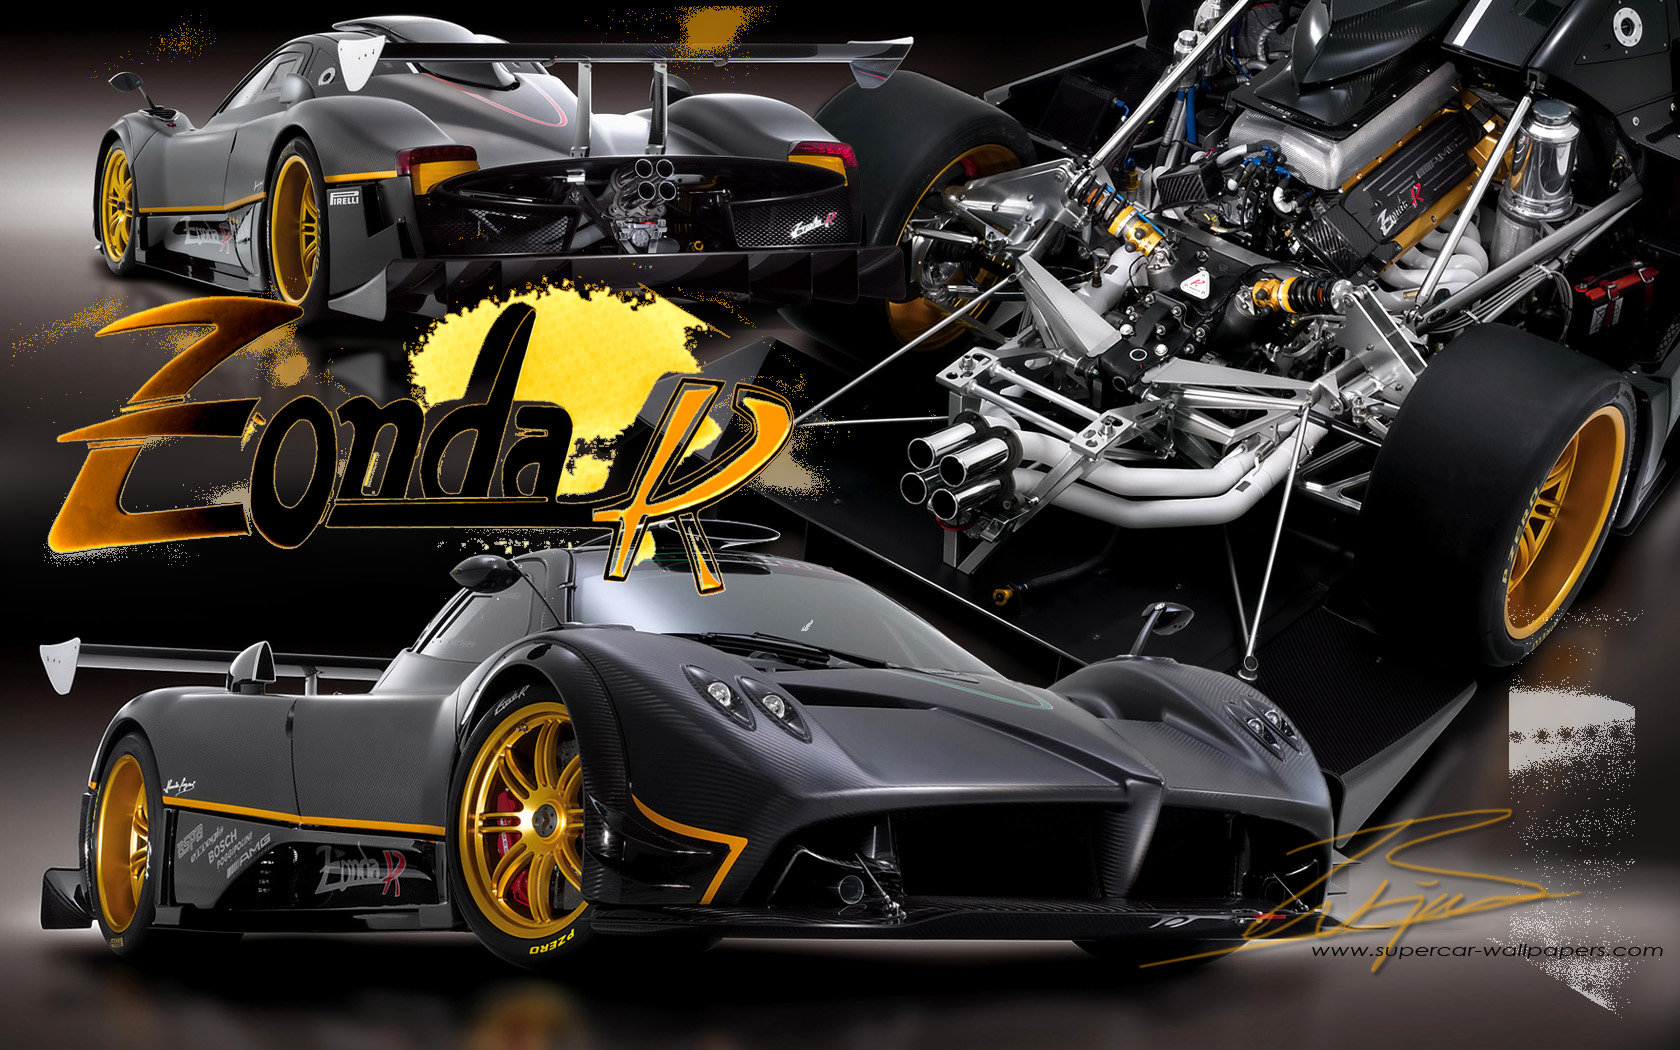 zonda r wallpaper and background image | 1680x1050 | id:97550